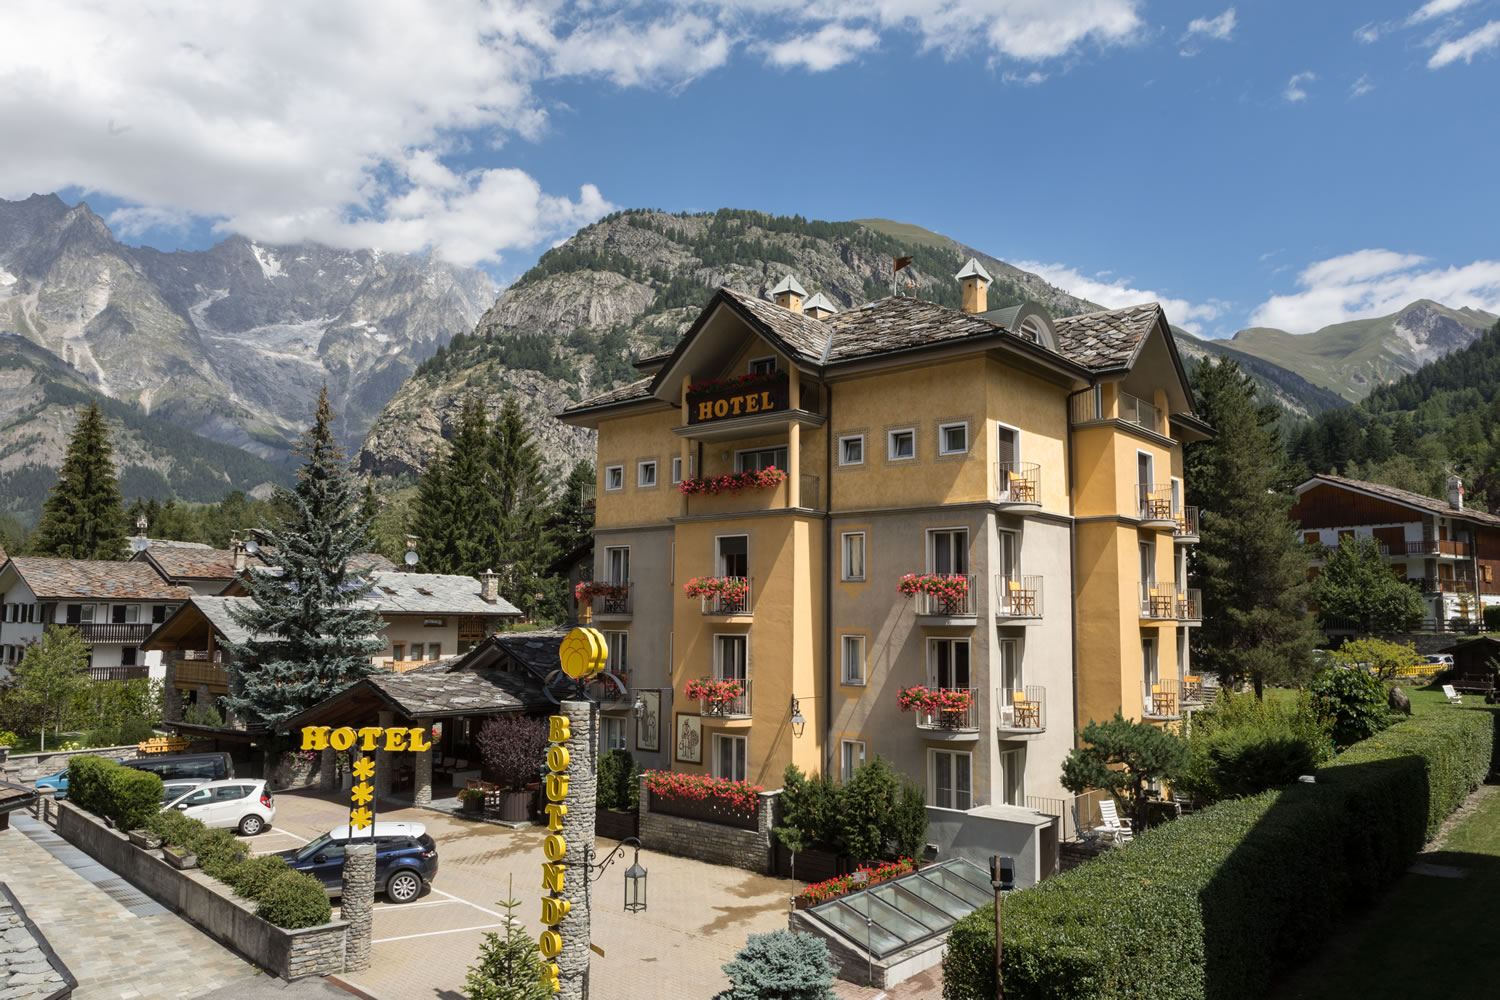 The Bouton d'Or hotel has its own car park and garage. In the centre of Courmayeur.